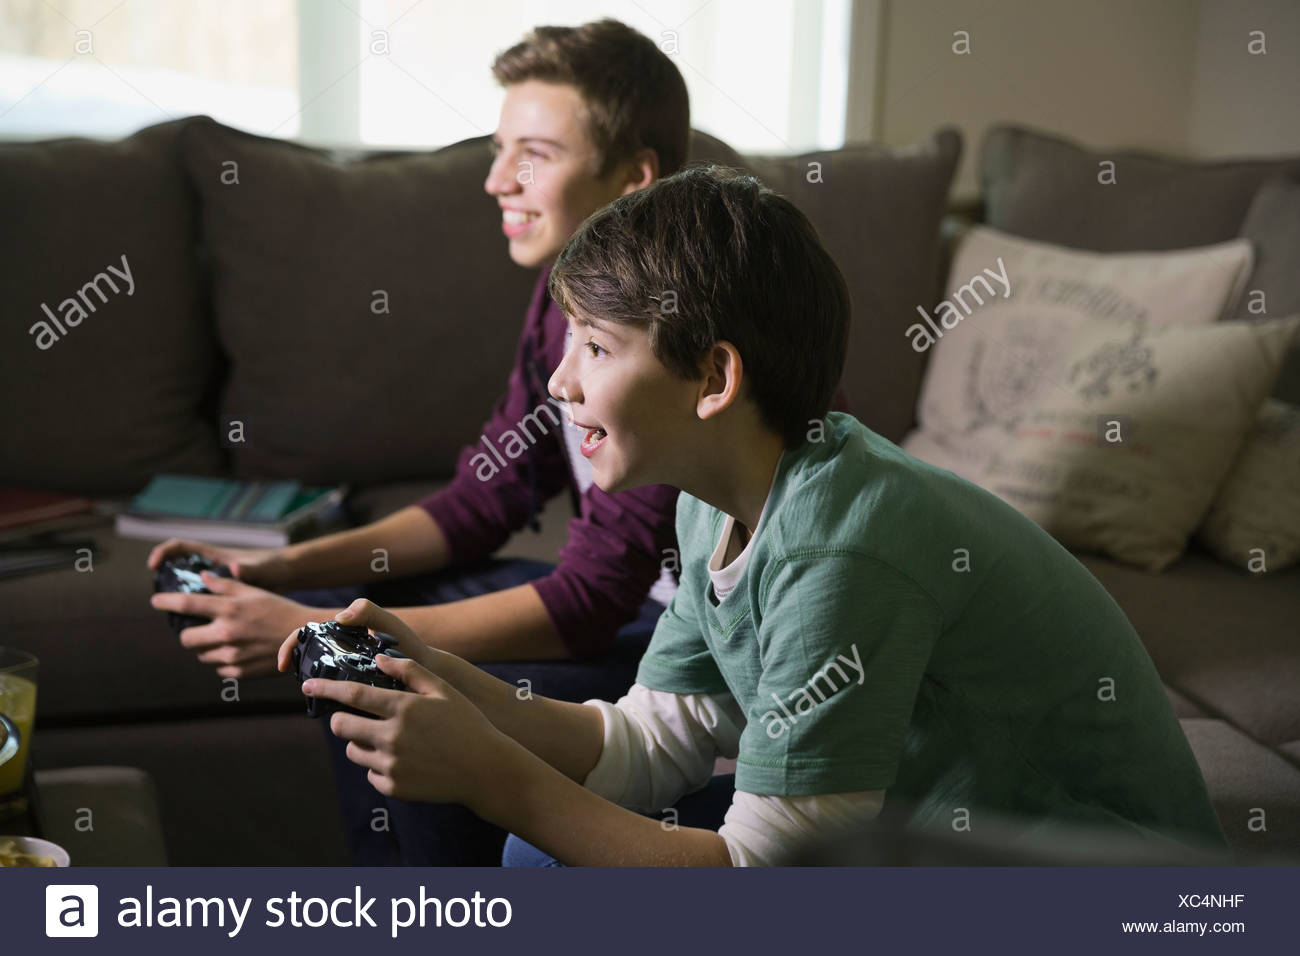 Brothers playing video games in living room - Stock Image